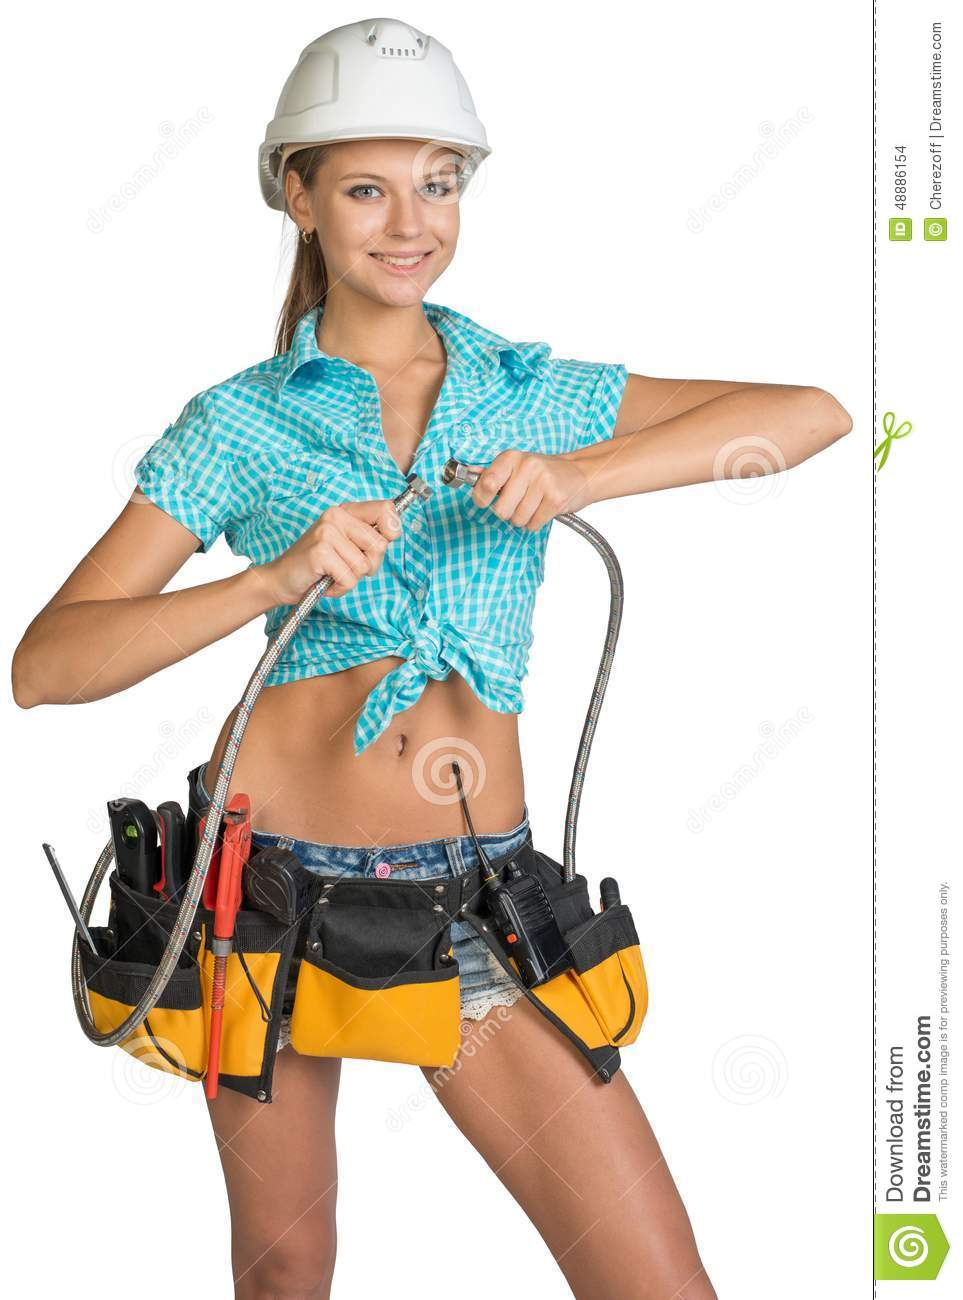 denmark hard sex tube